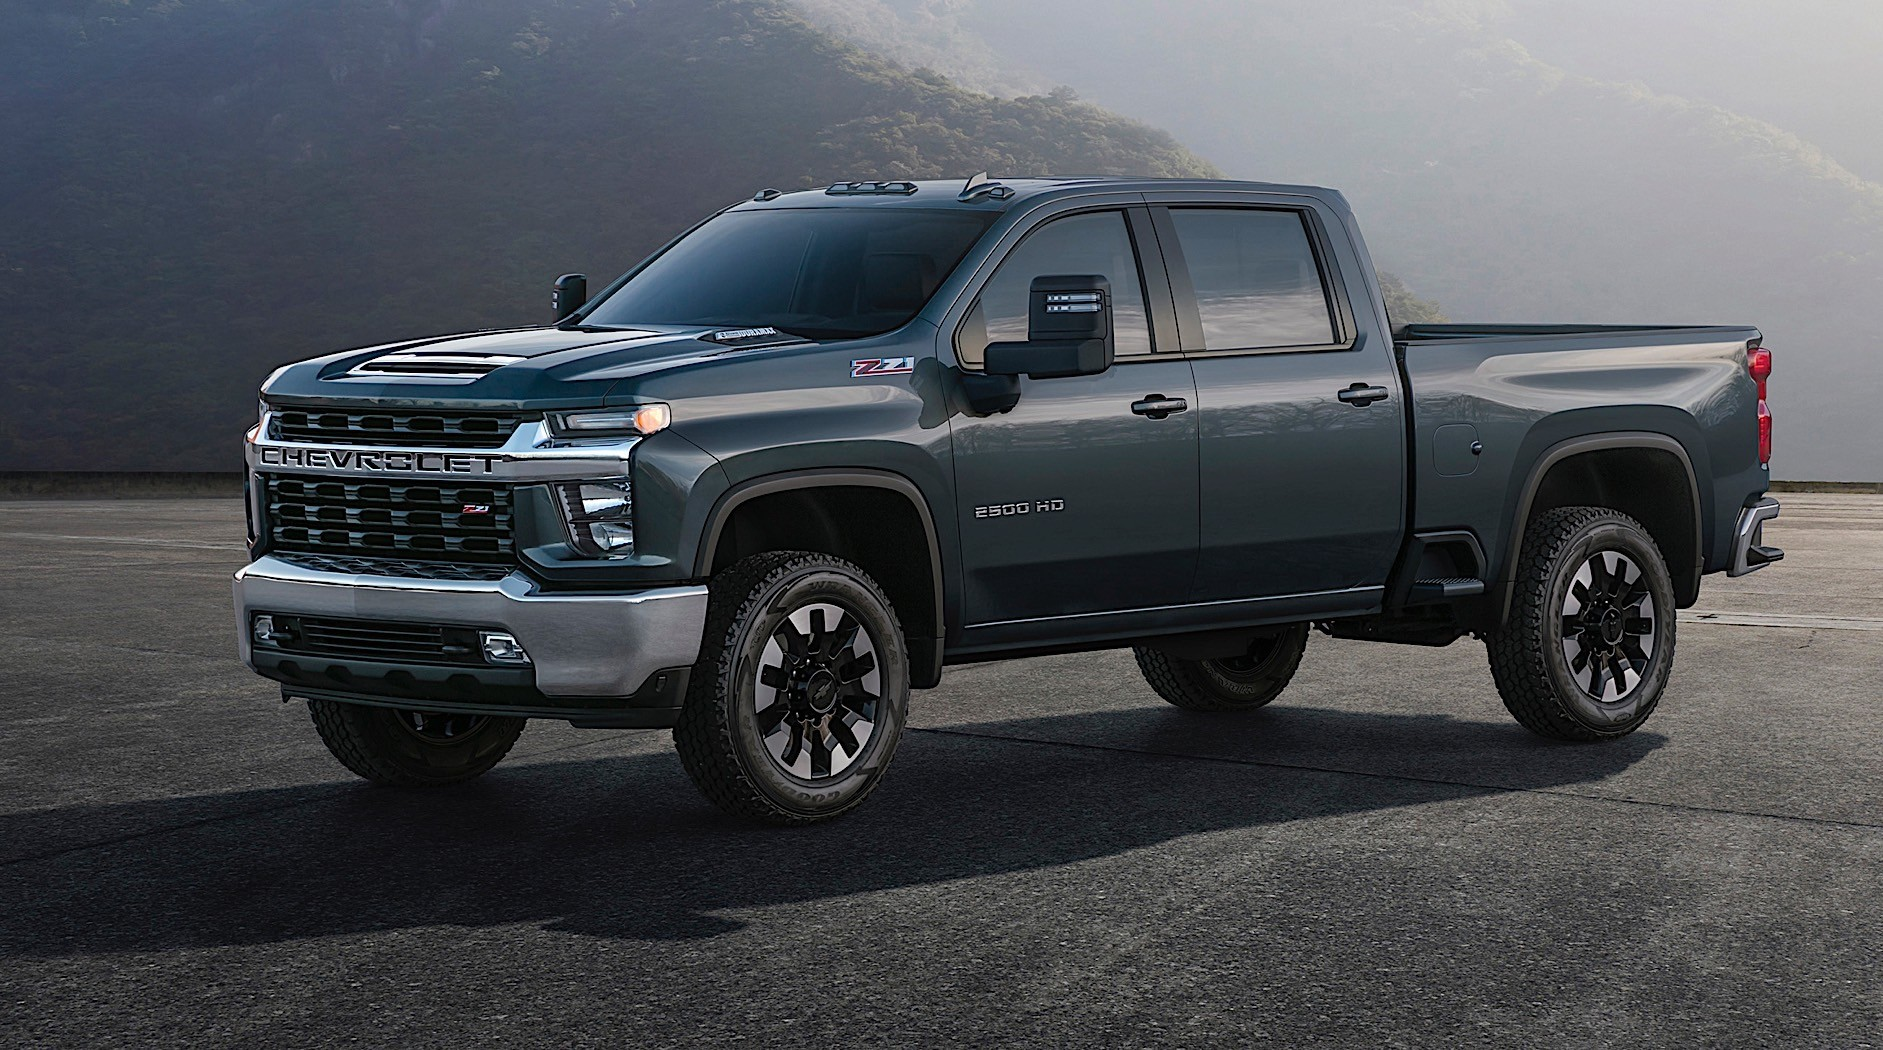 2020 Chevrolet Silverado HD Breaks Cover, First Details ...